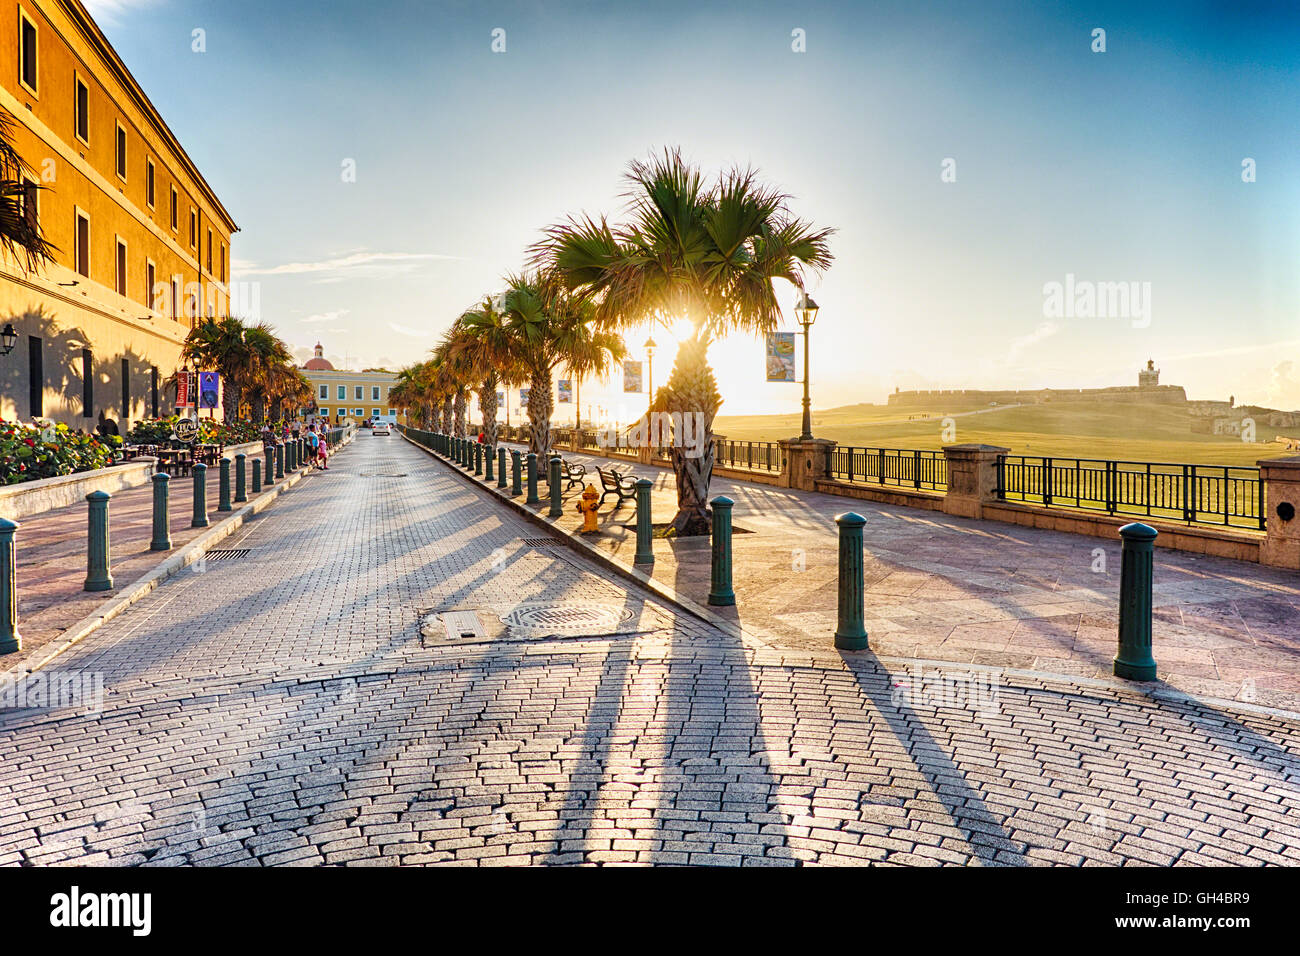 Old San Juan Sunset as Viewed From Calle Norzagaray with Fort El Morro in The Background, San Juan, Puerto Rico - Stock Image